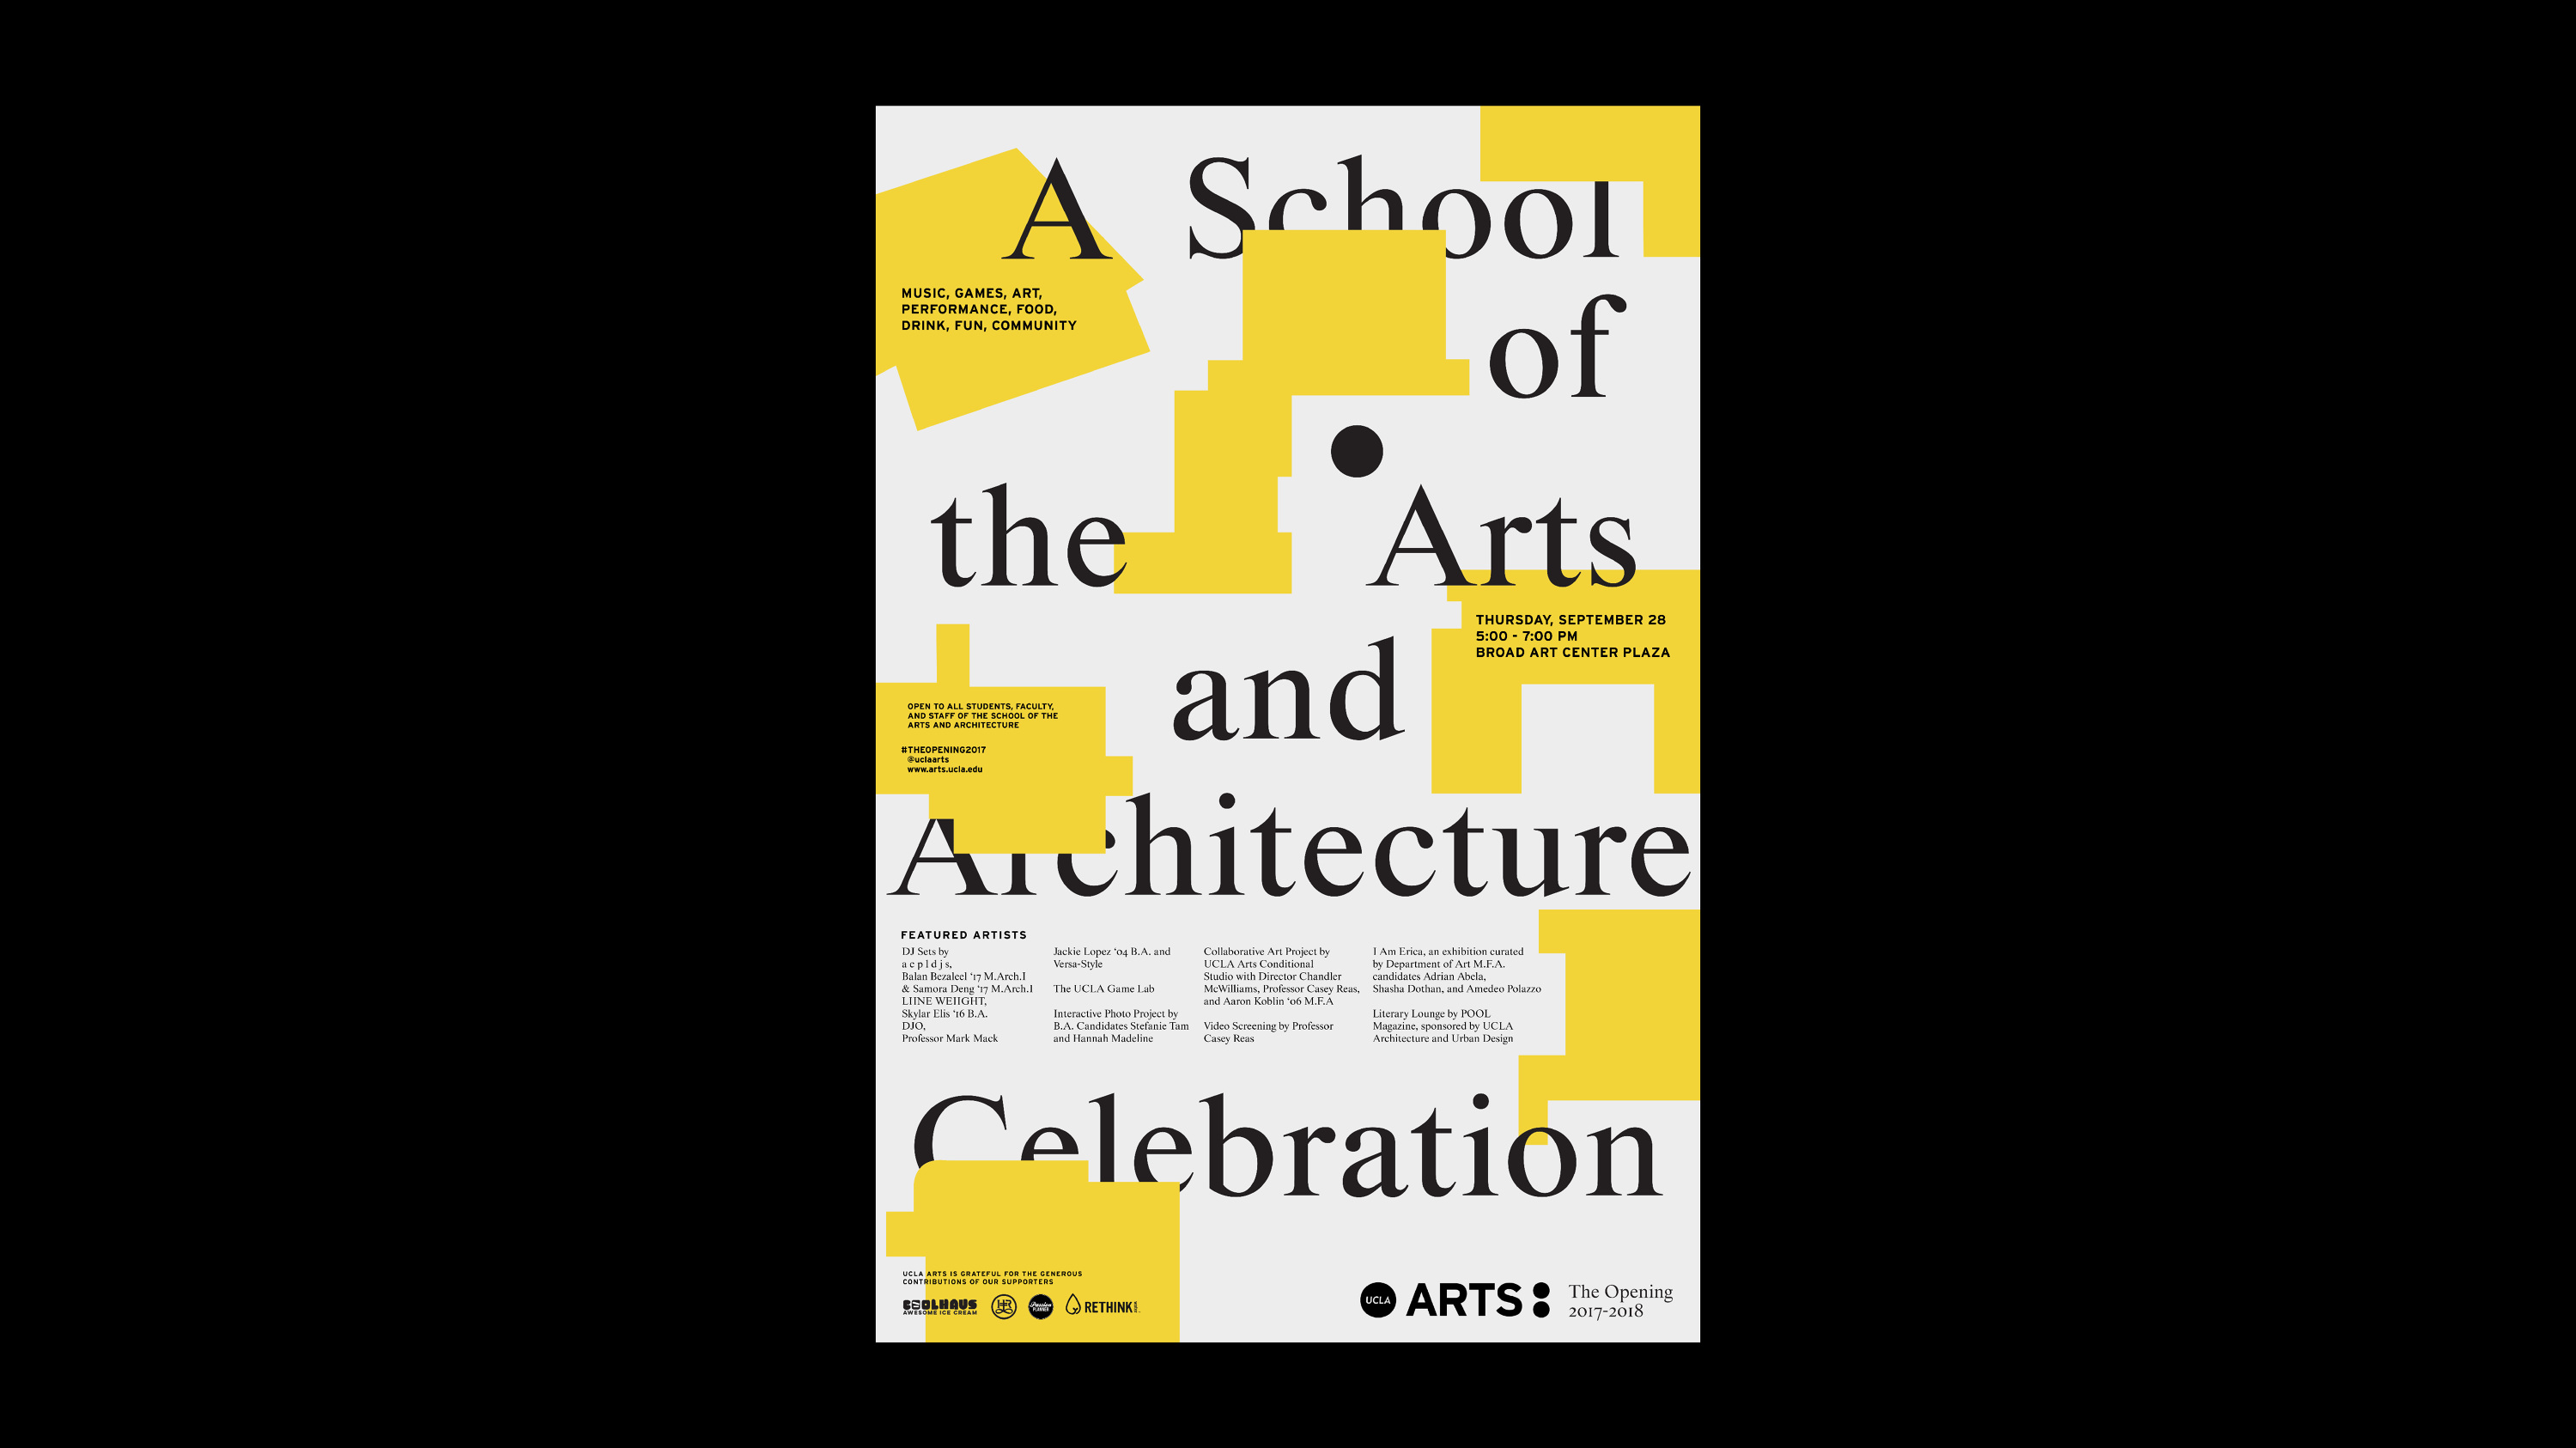 UCLA SCHOOL OF THE ARTS ARCHITECTURE Sophia Arriolagibson - Ucla arts and architecture